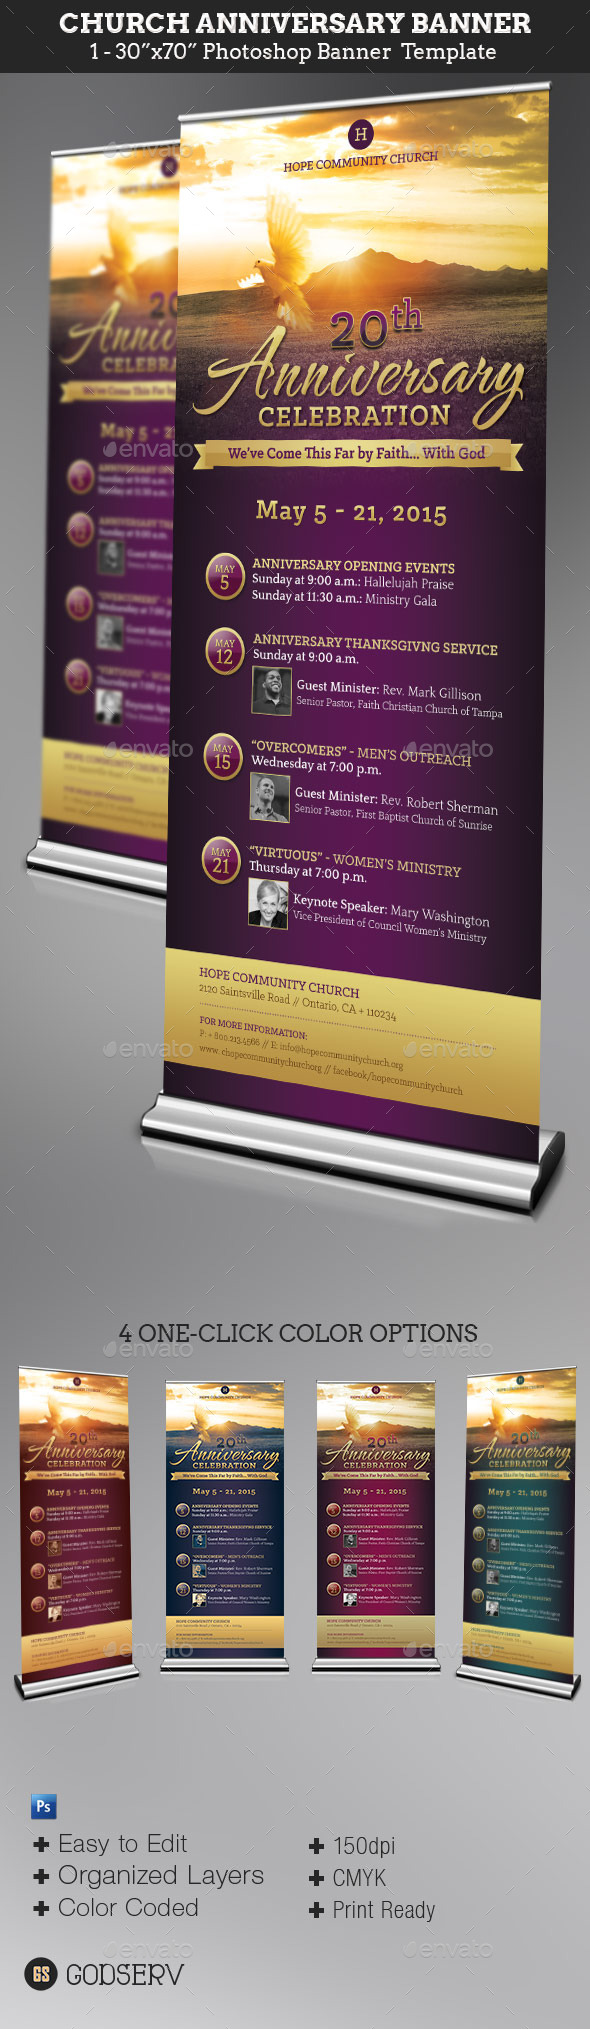 GraphicRiver Church Anniversary Banner Template 11259043